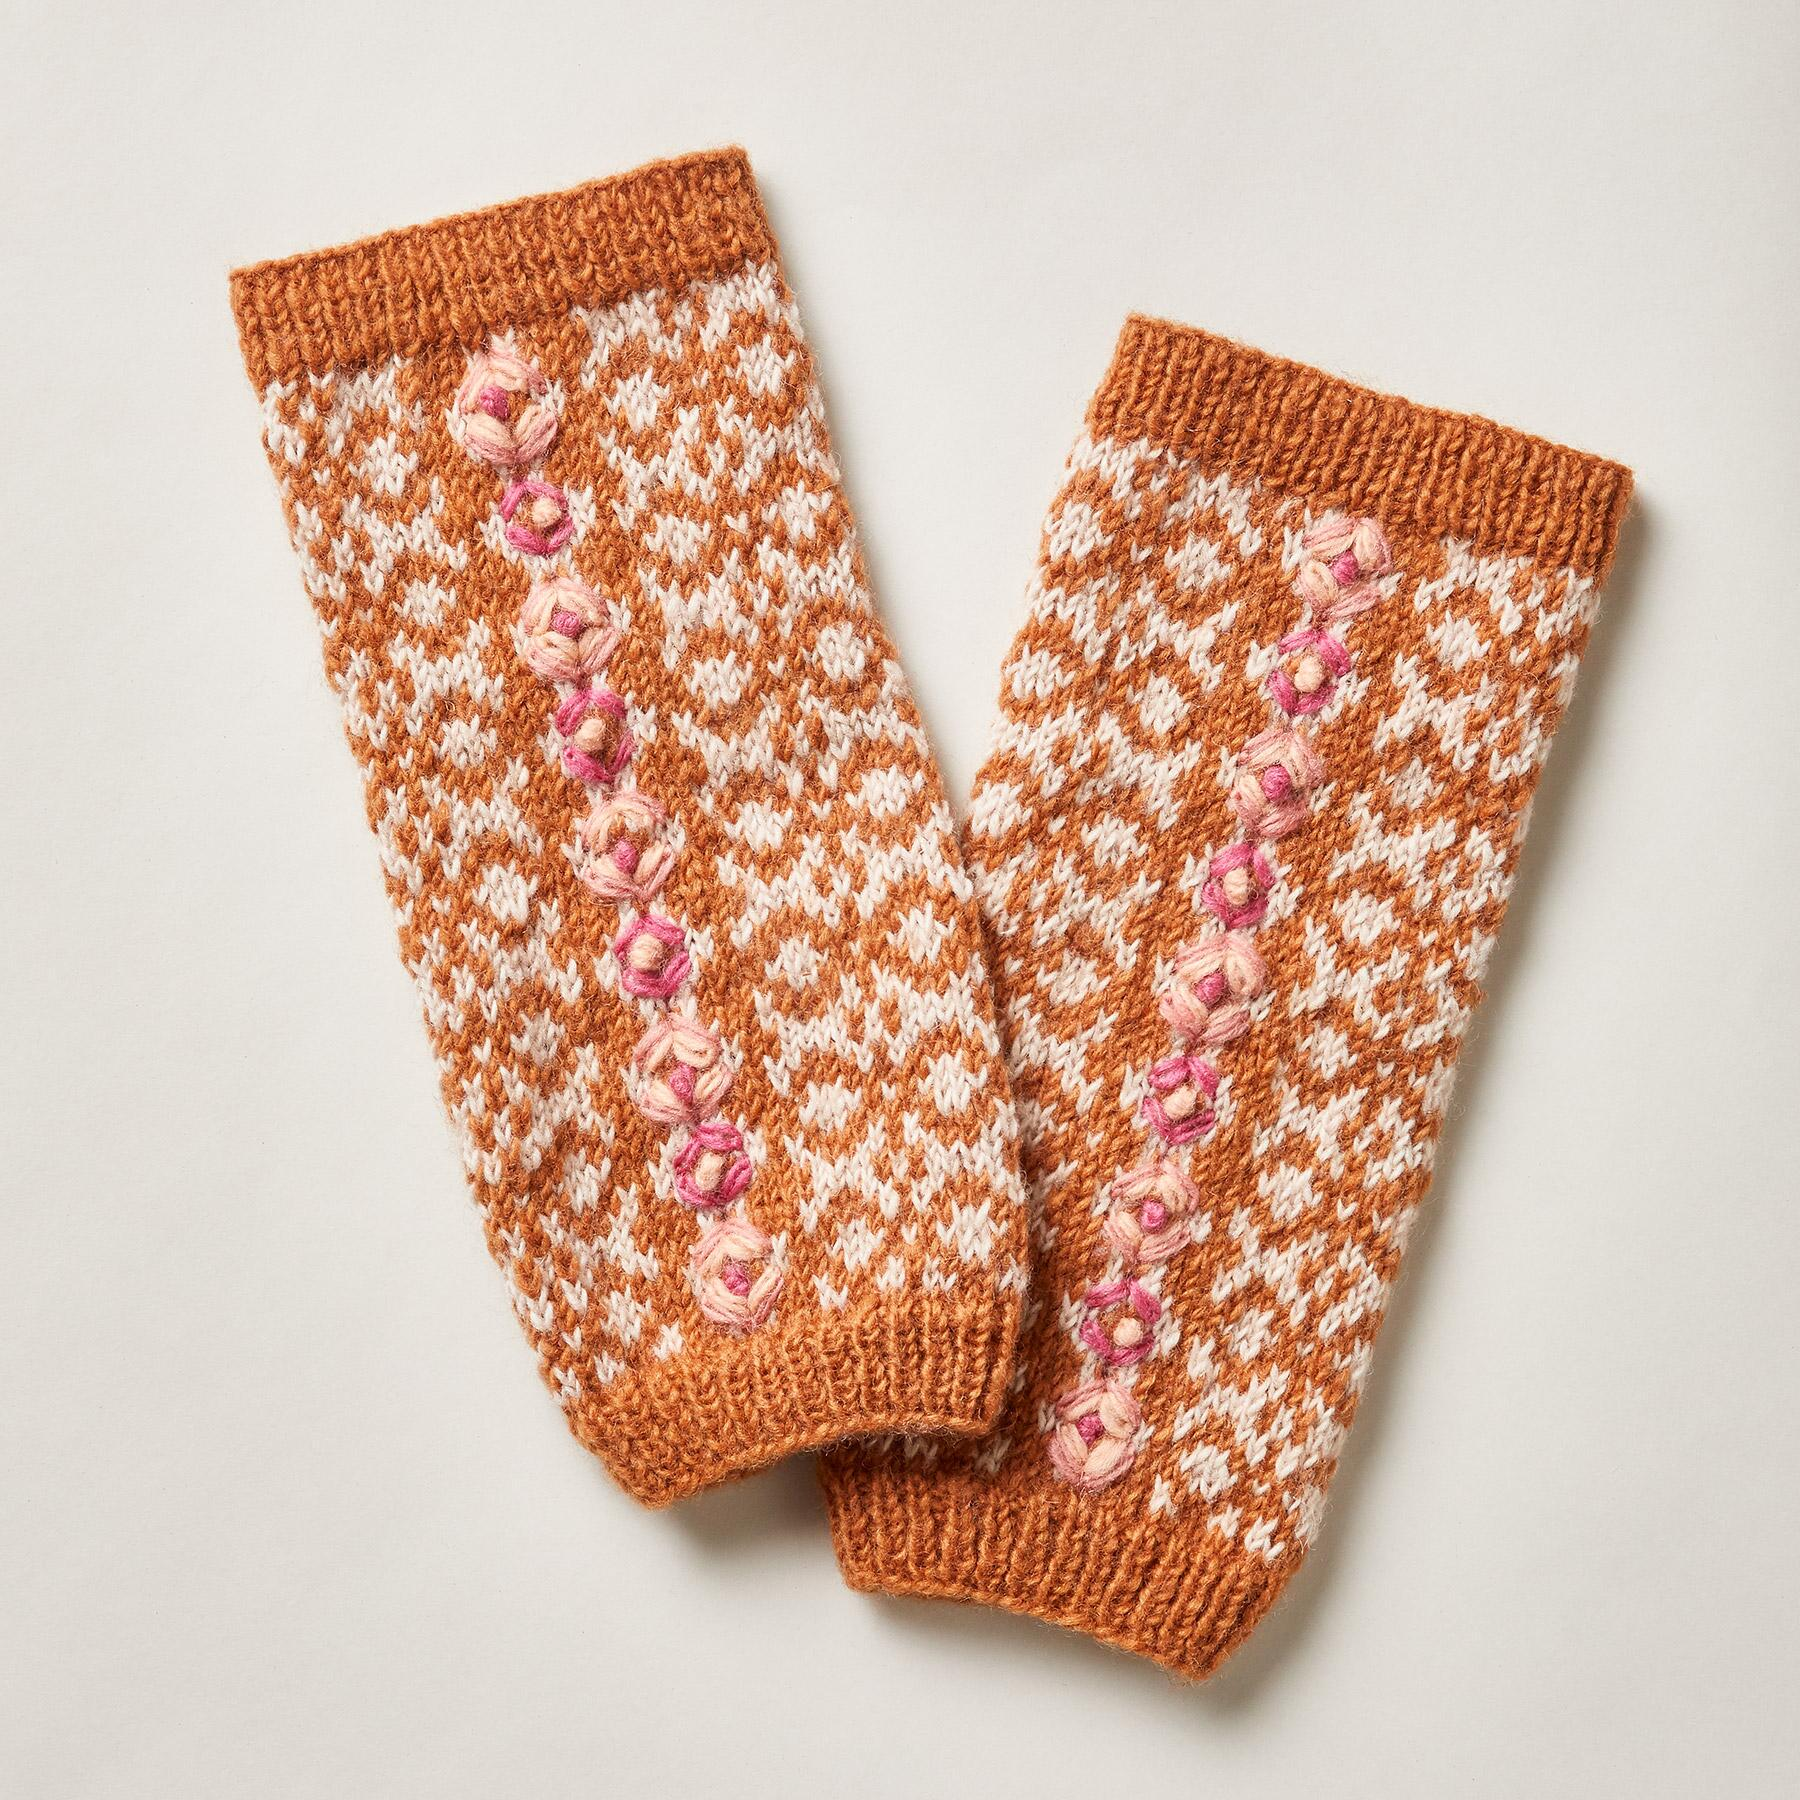 SEA & STONE LEG WARMERS: View 1